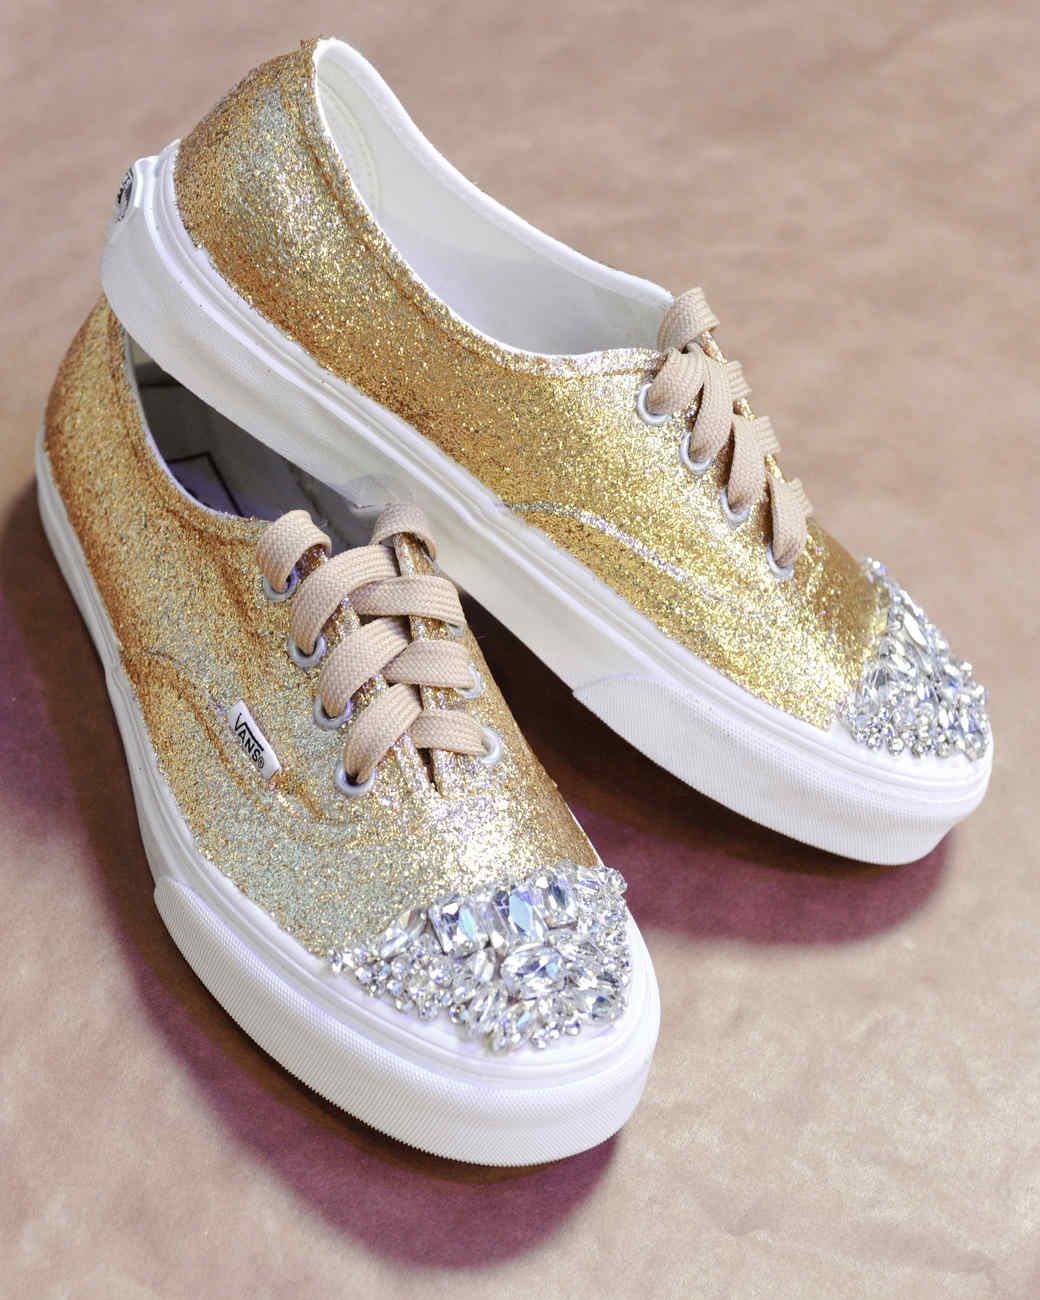 2019 year for women- Shoes Canvas do it yourself